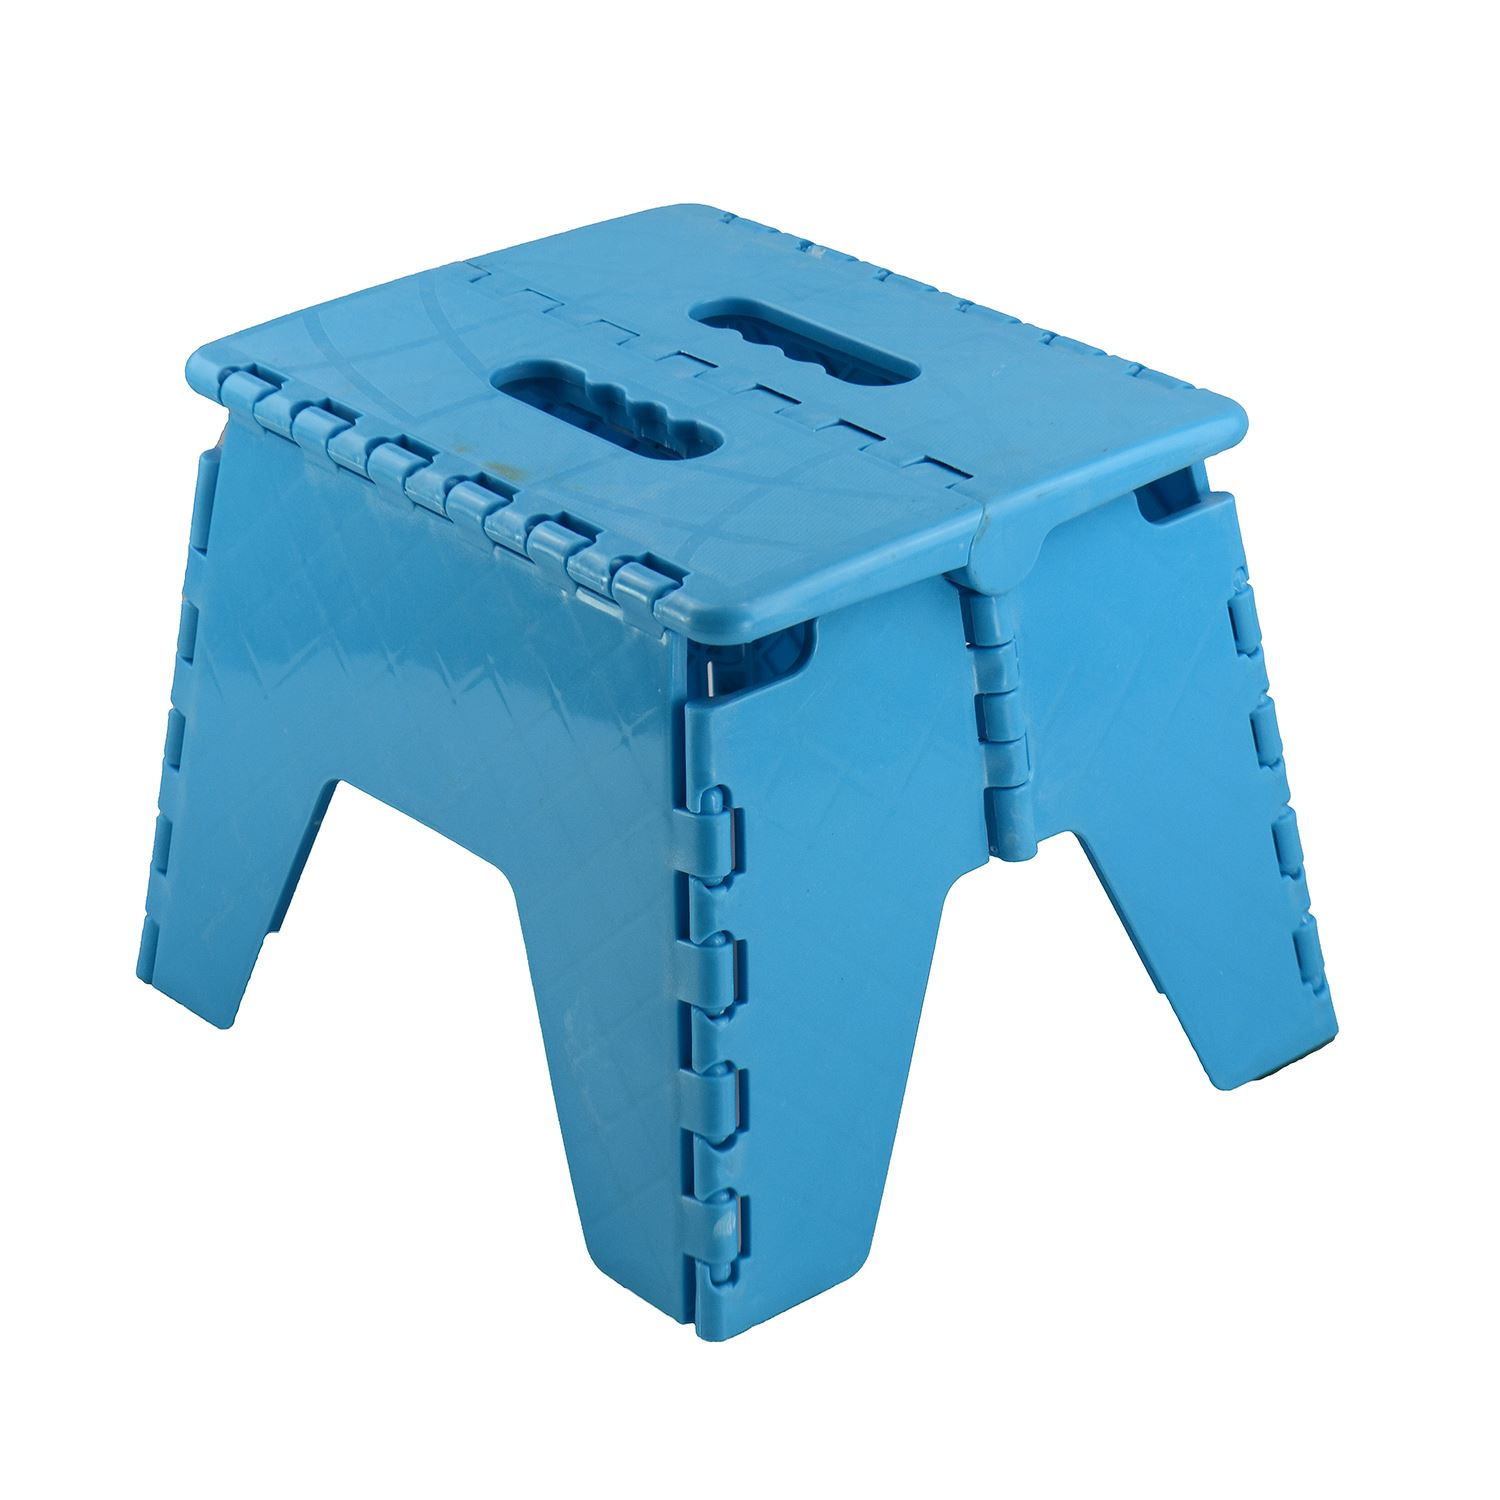 New Multi Purpose Plastic Folding Step Stool Home Kitchen